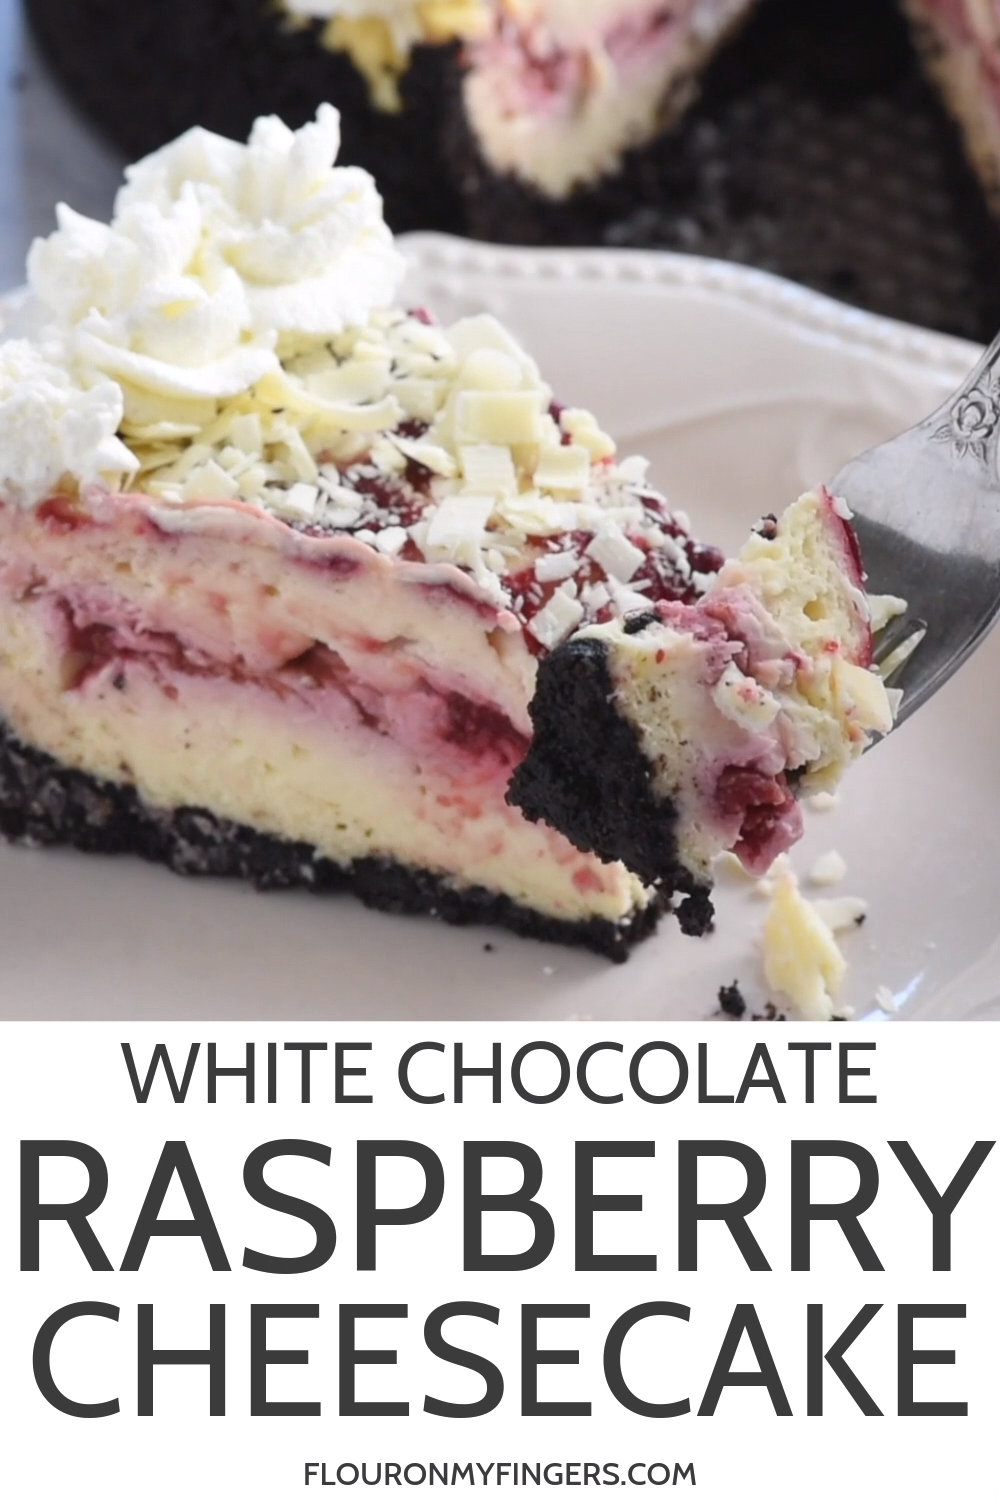 Olive Garden Copycat White Chocolate Raspberry Cheesecake